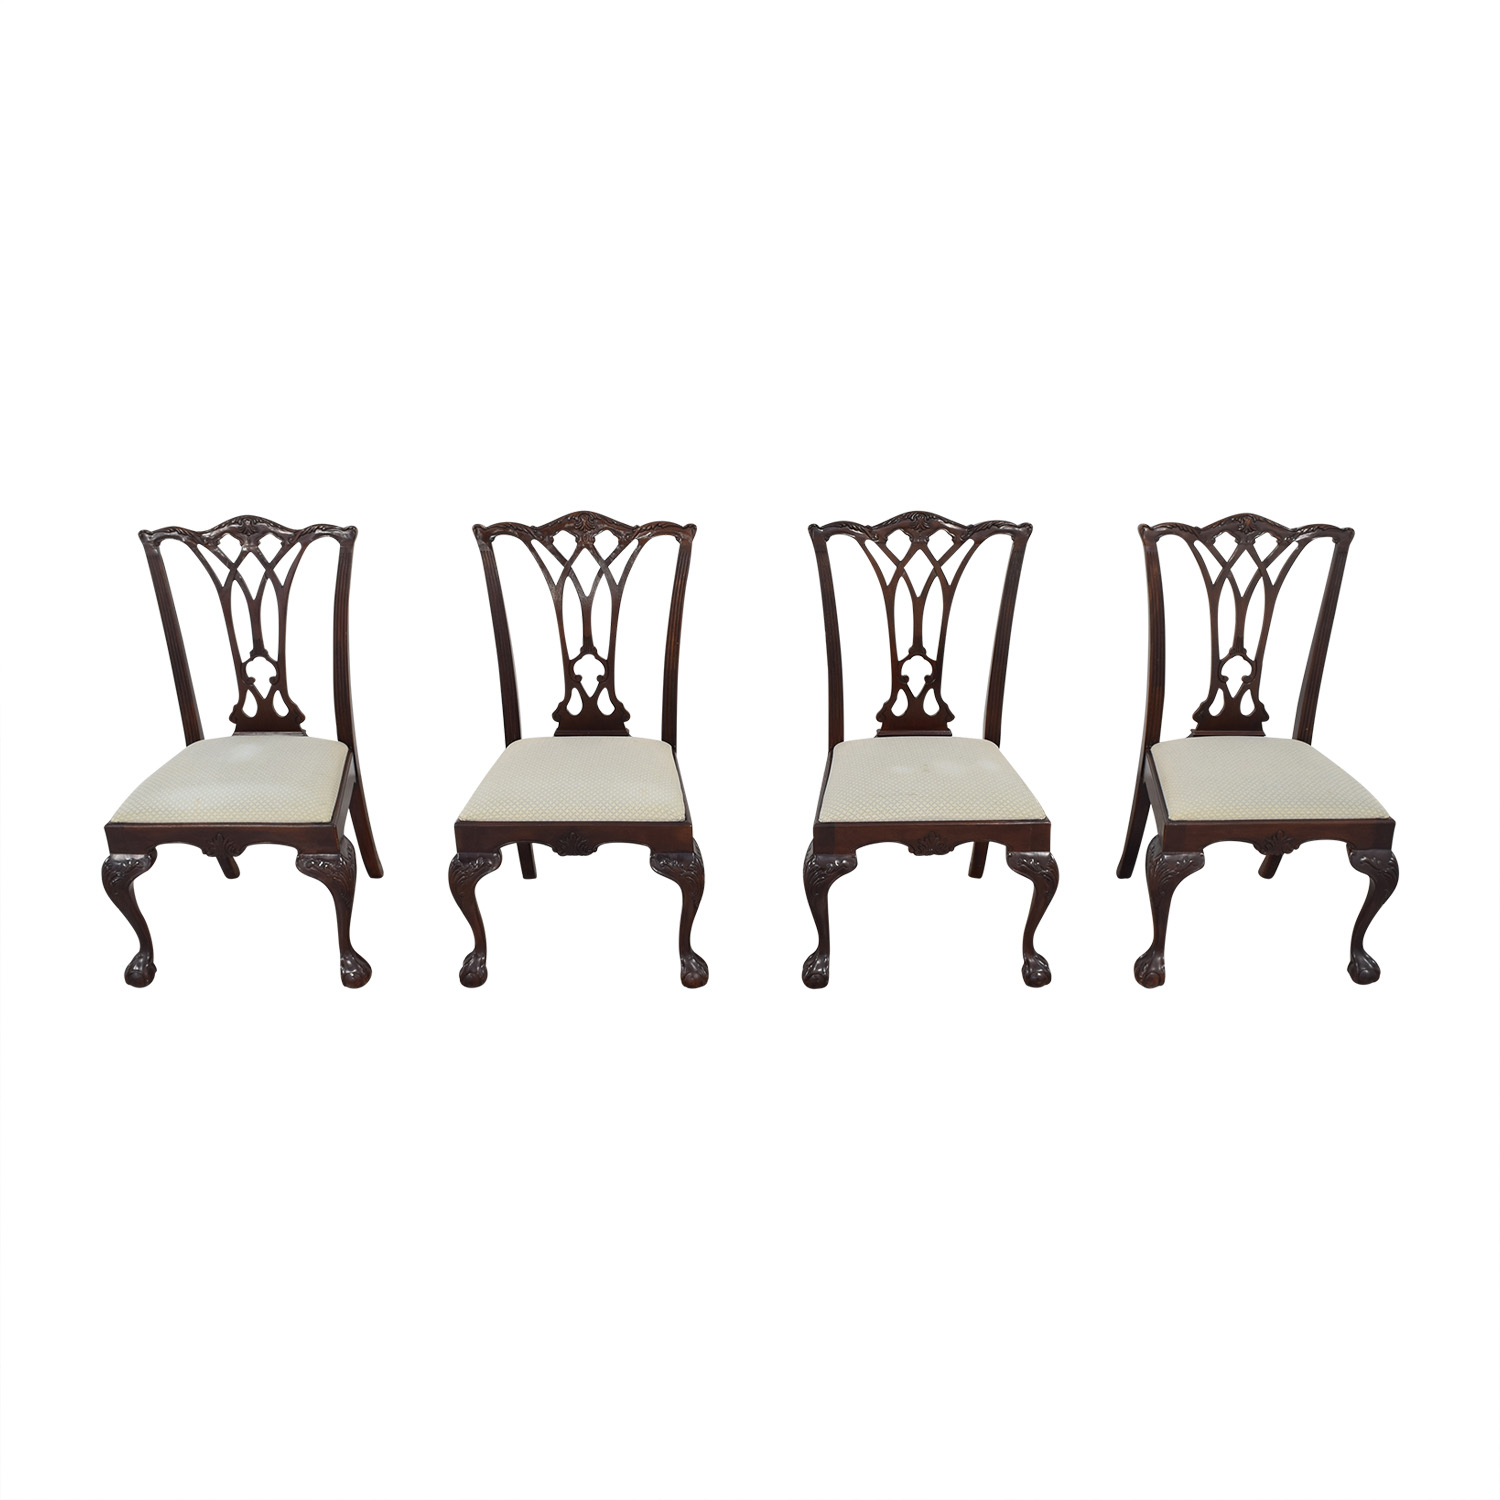 Drexel Heritage Drexel Heritage Armless Dining Chairs brown and beige